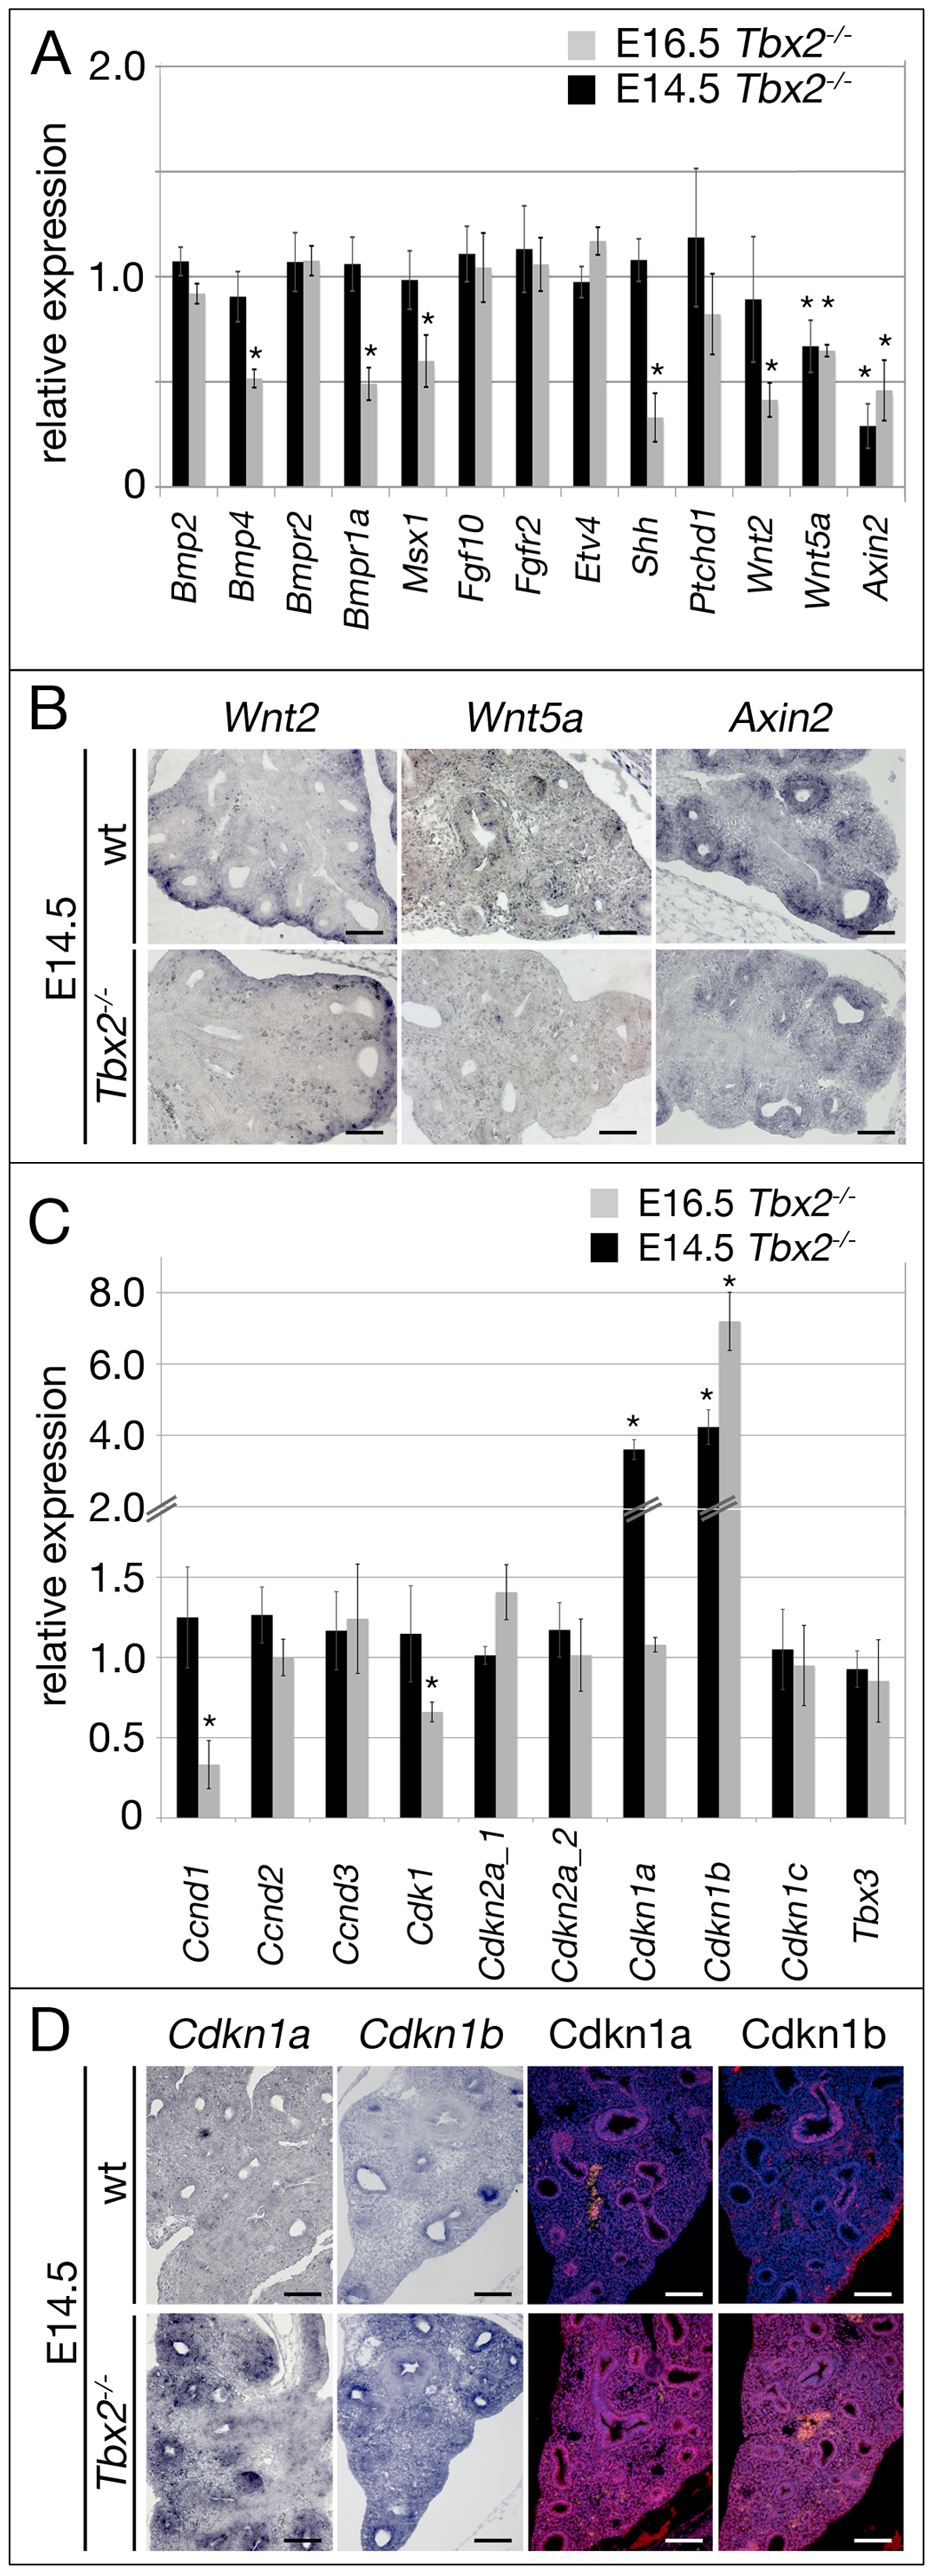 Derepression of genes encoding cell cycle inhibitors precedes proliferation and differentiation defects in the <i>Tbx2</i>-deficient lung mesenchyme.